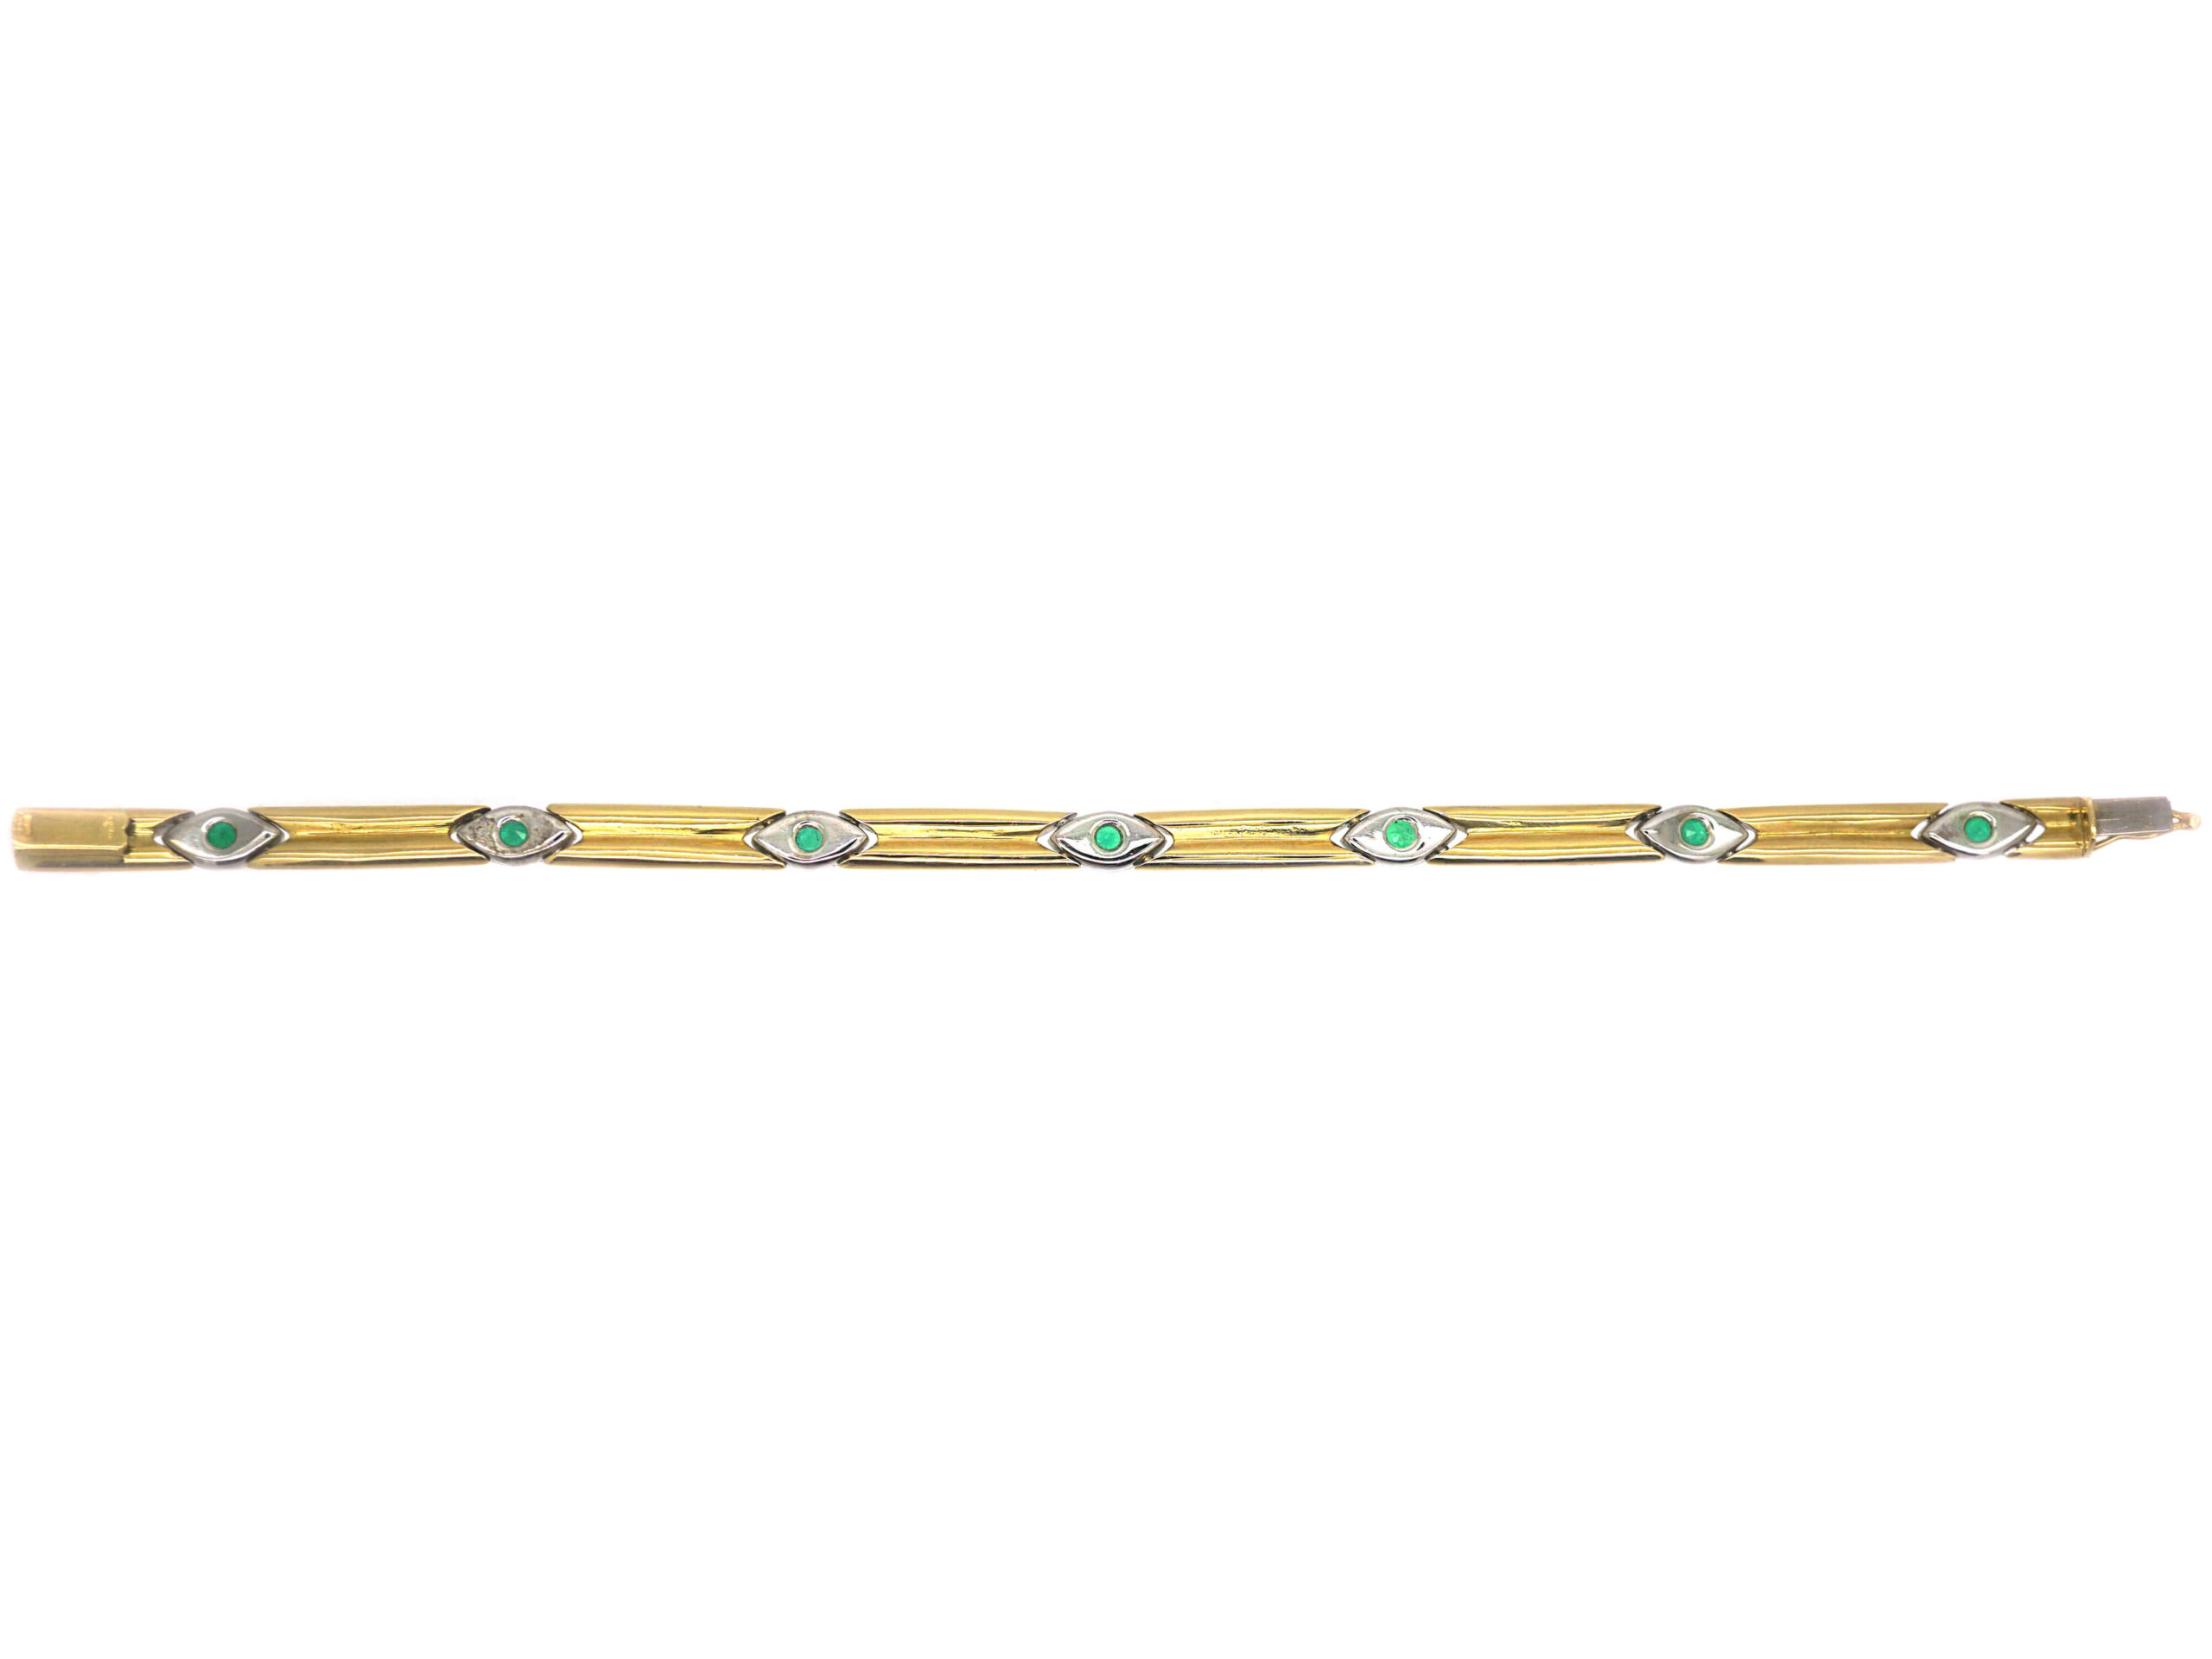 18ct White & Yellow Gold Bracelet  set with Seven Emeralds